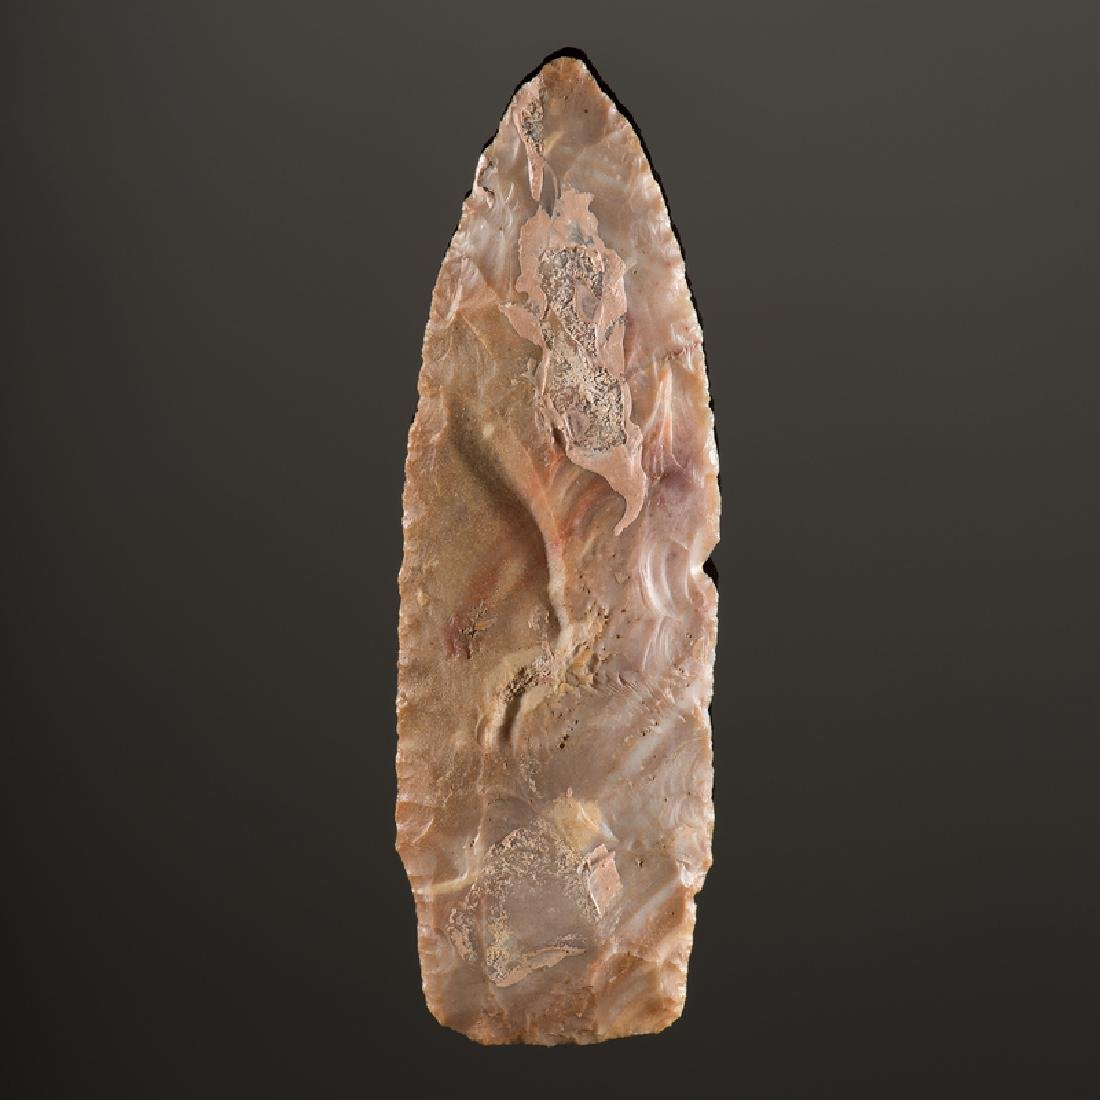 A Stemmed Flint Ridge Lanceolate, From the Collection